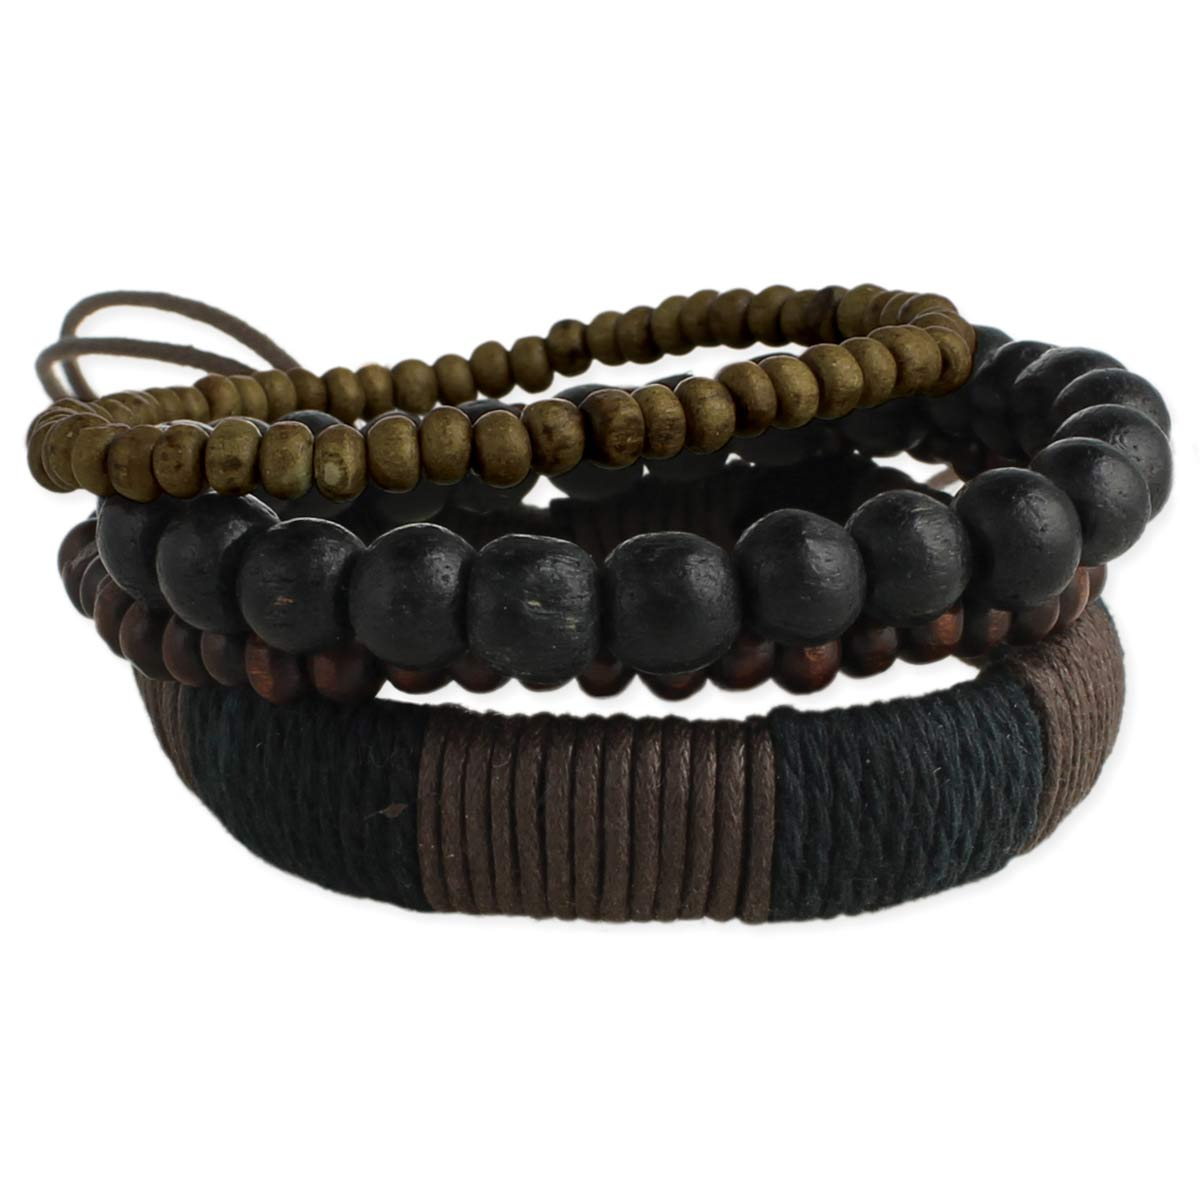 Set of 4 Wood Bead & Leather Men's Bracelets